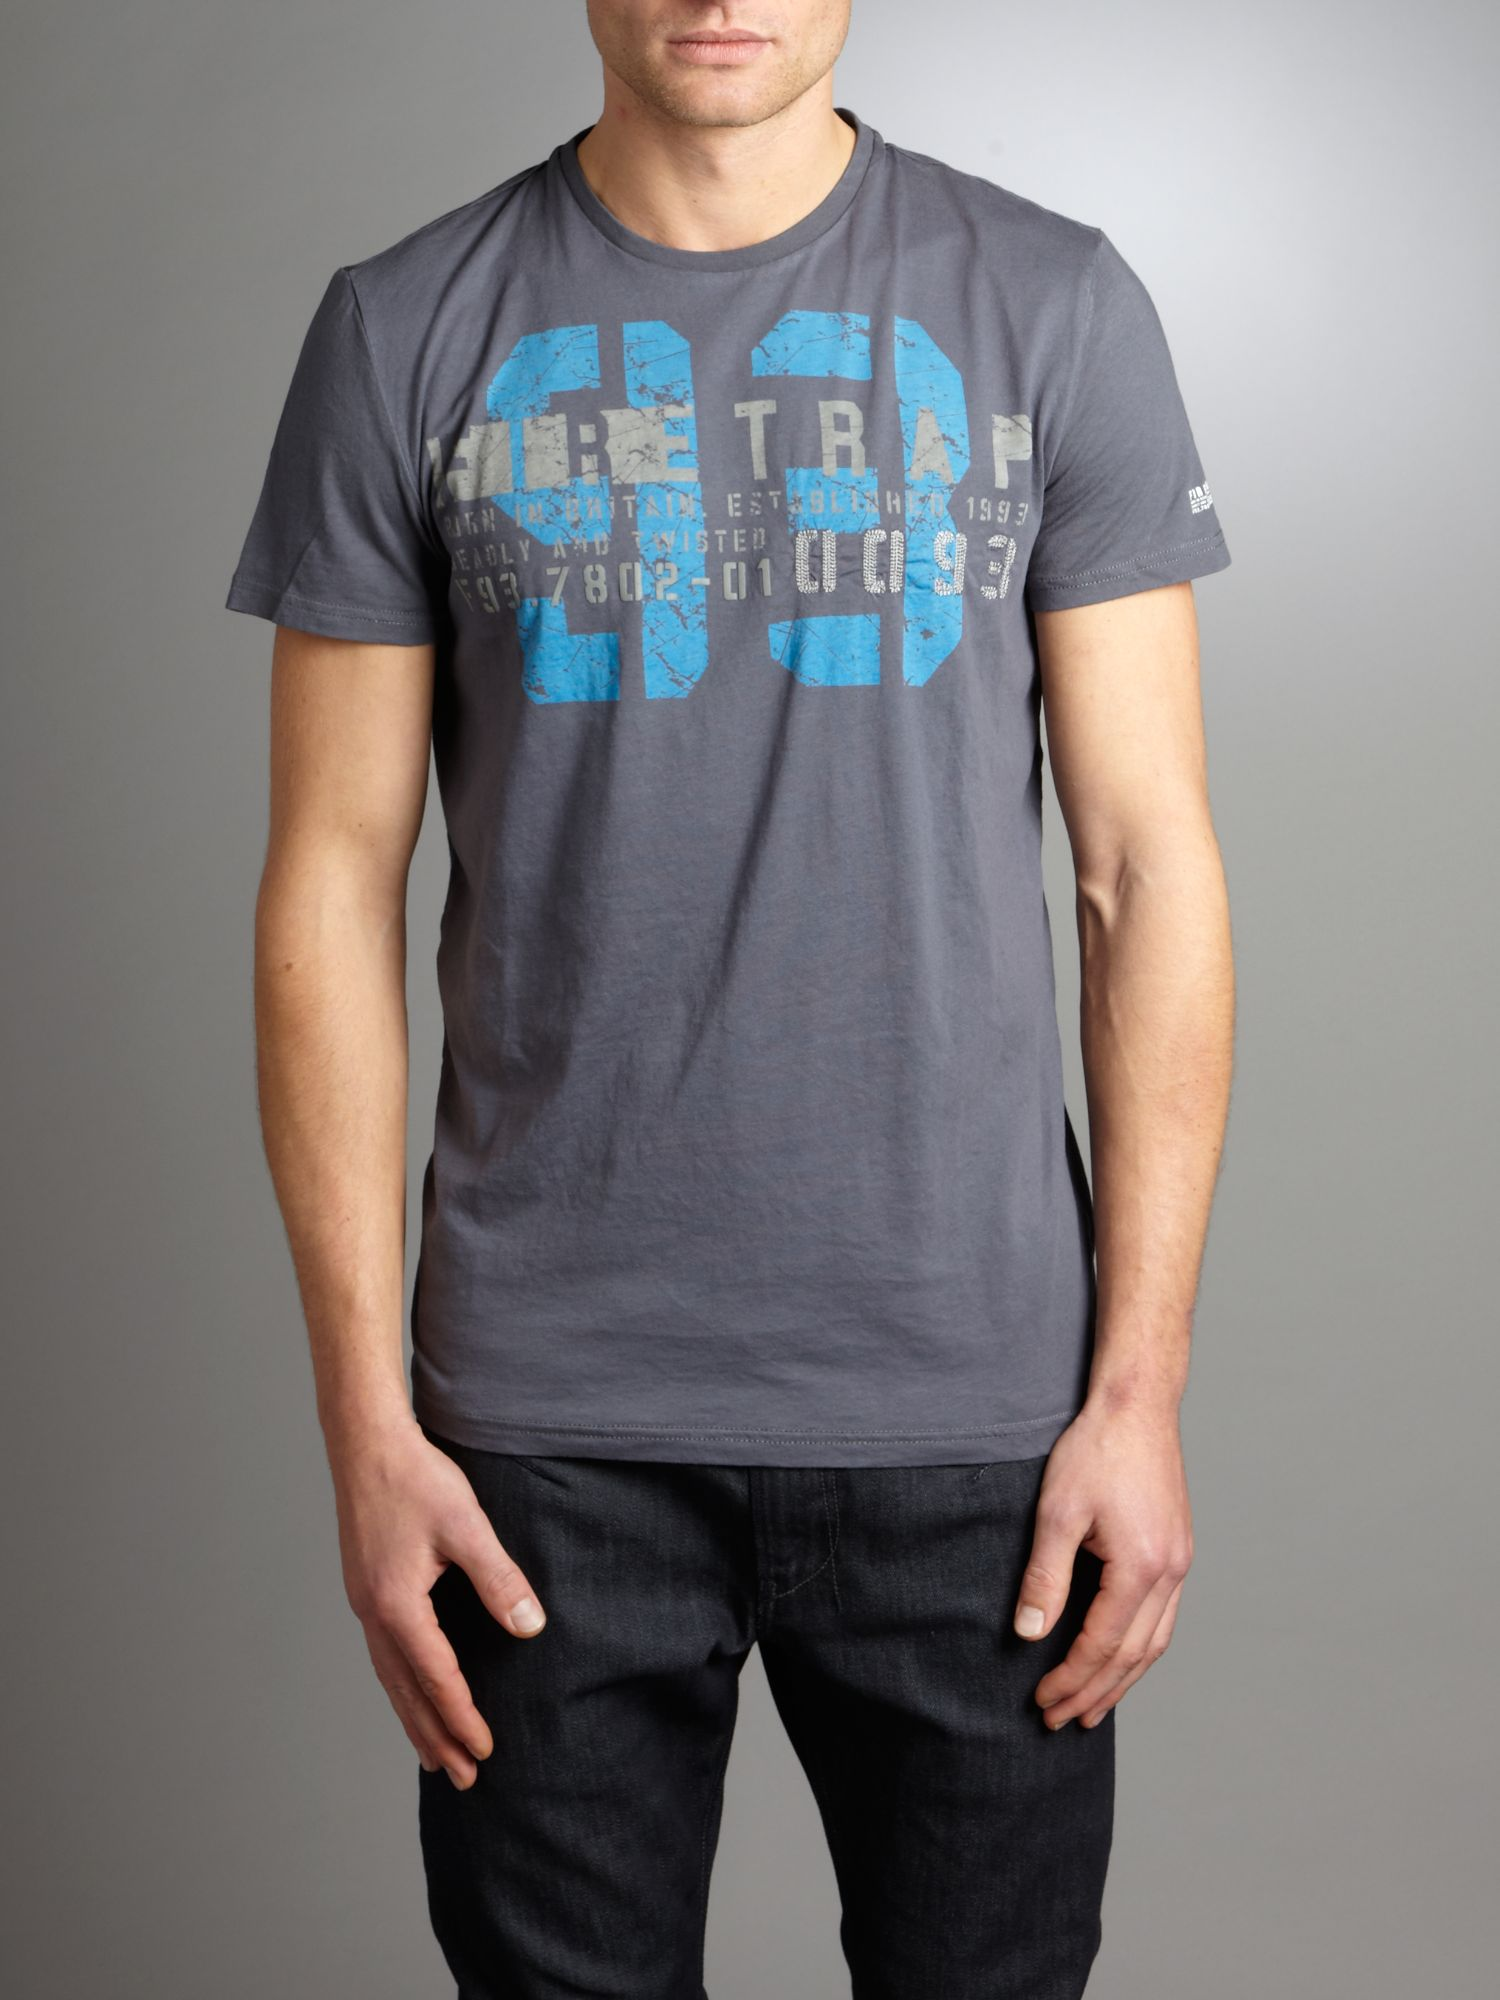 Firetrap Numbers logo t-shirt - Grey S,S product image